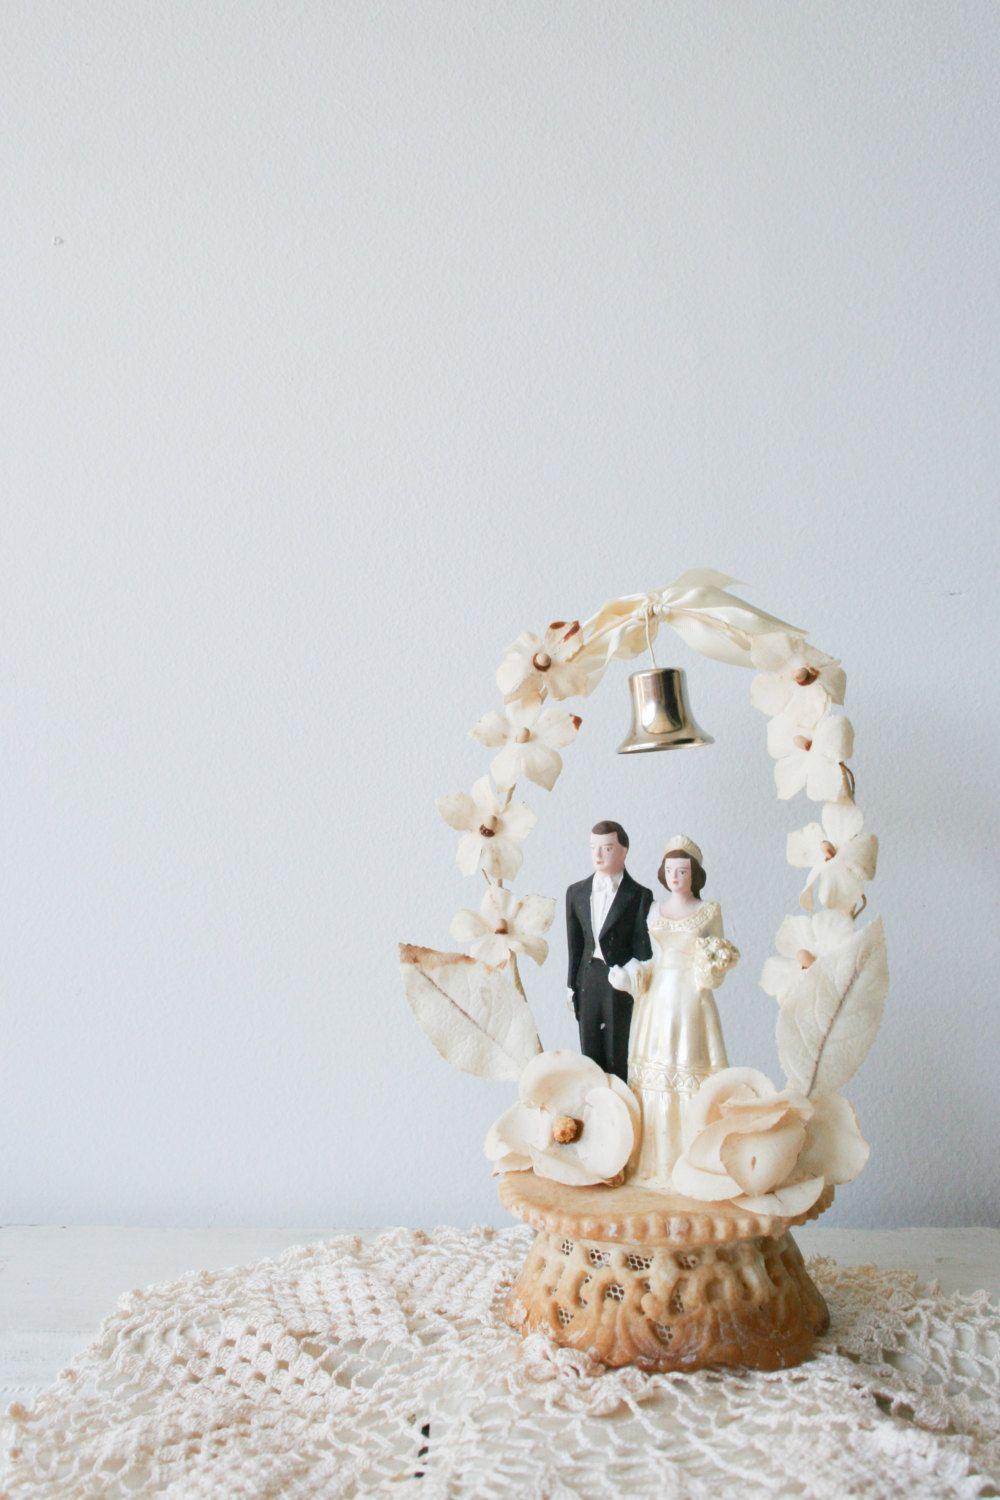 S wedding cake topper nuvis de pastis wedding cakes toppers